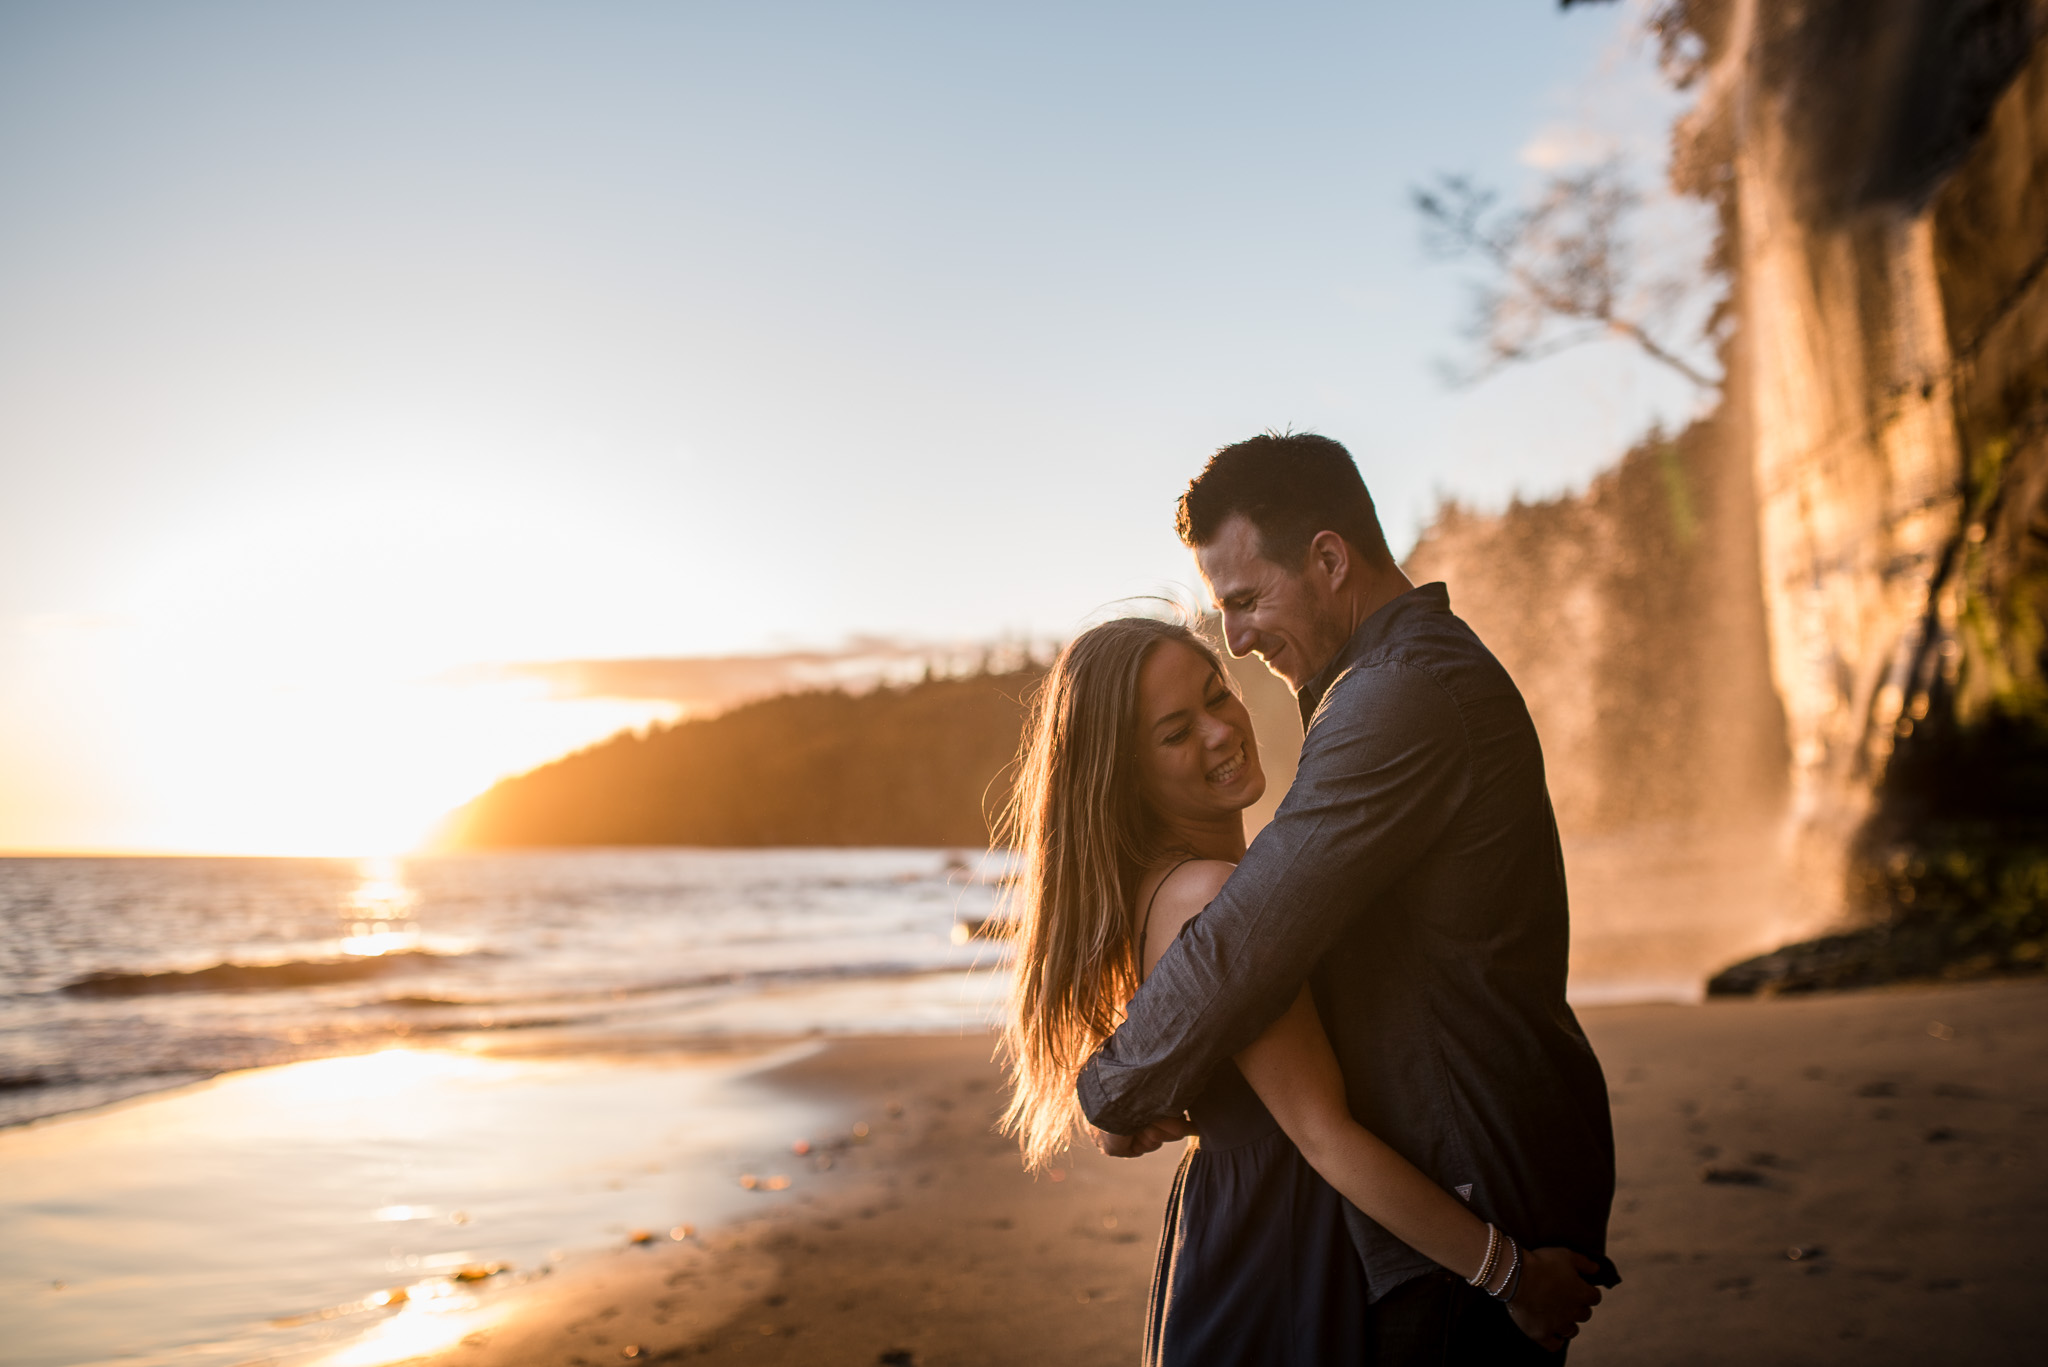 mystic-beach-engagement-victoria-wedding-photographer-32.jpg